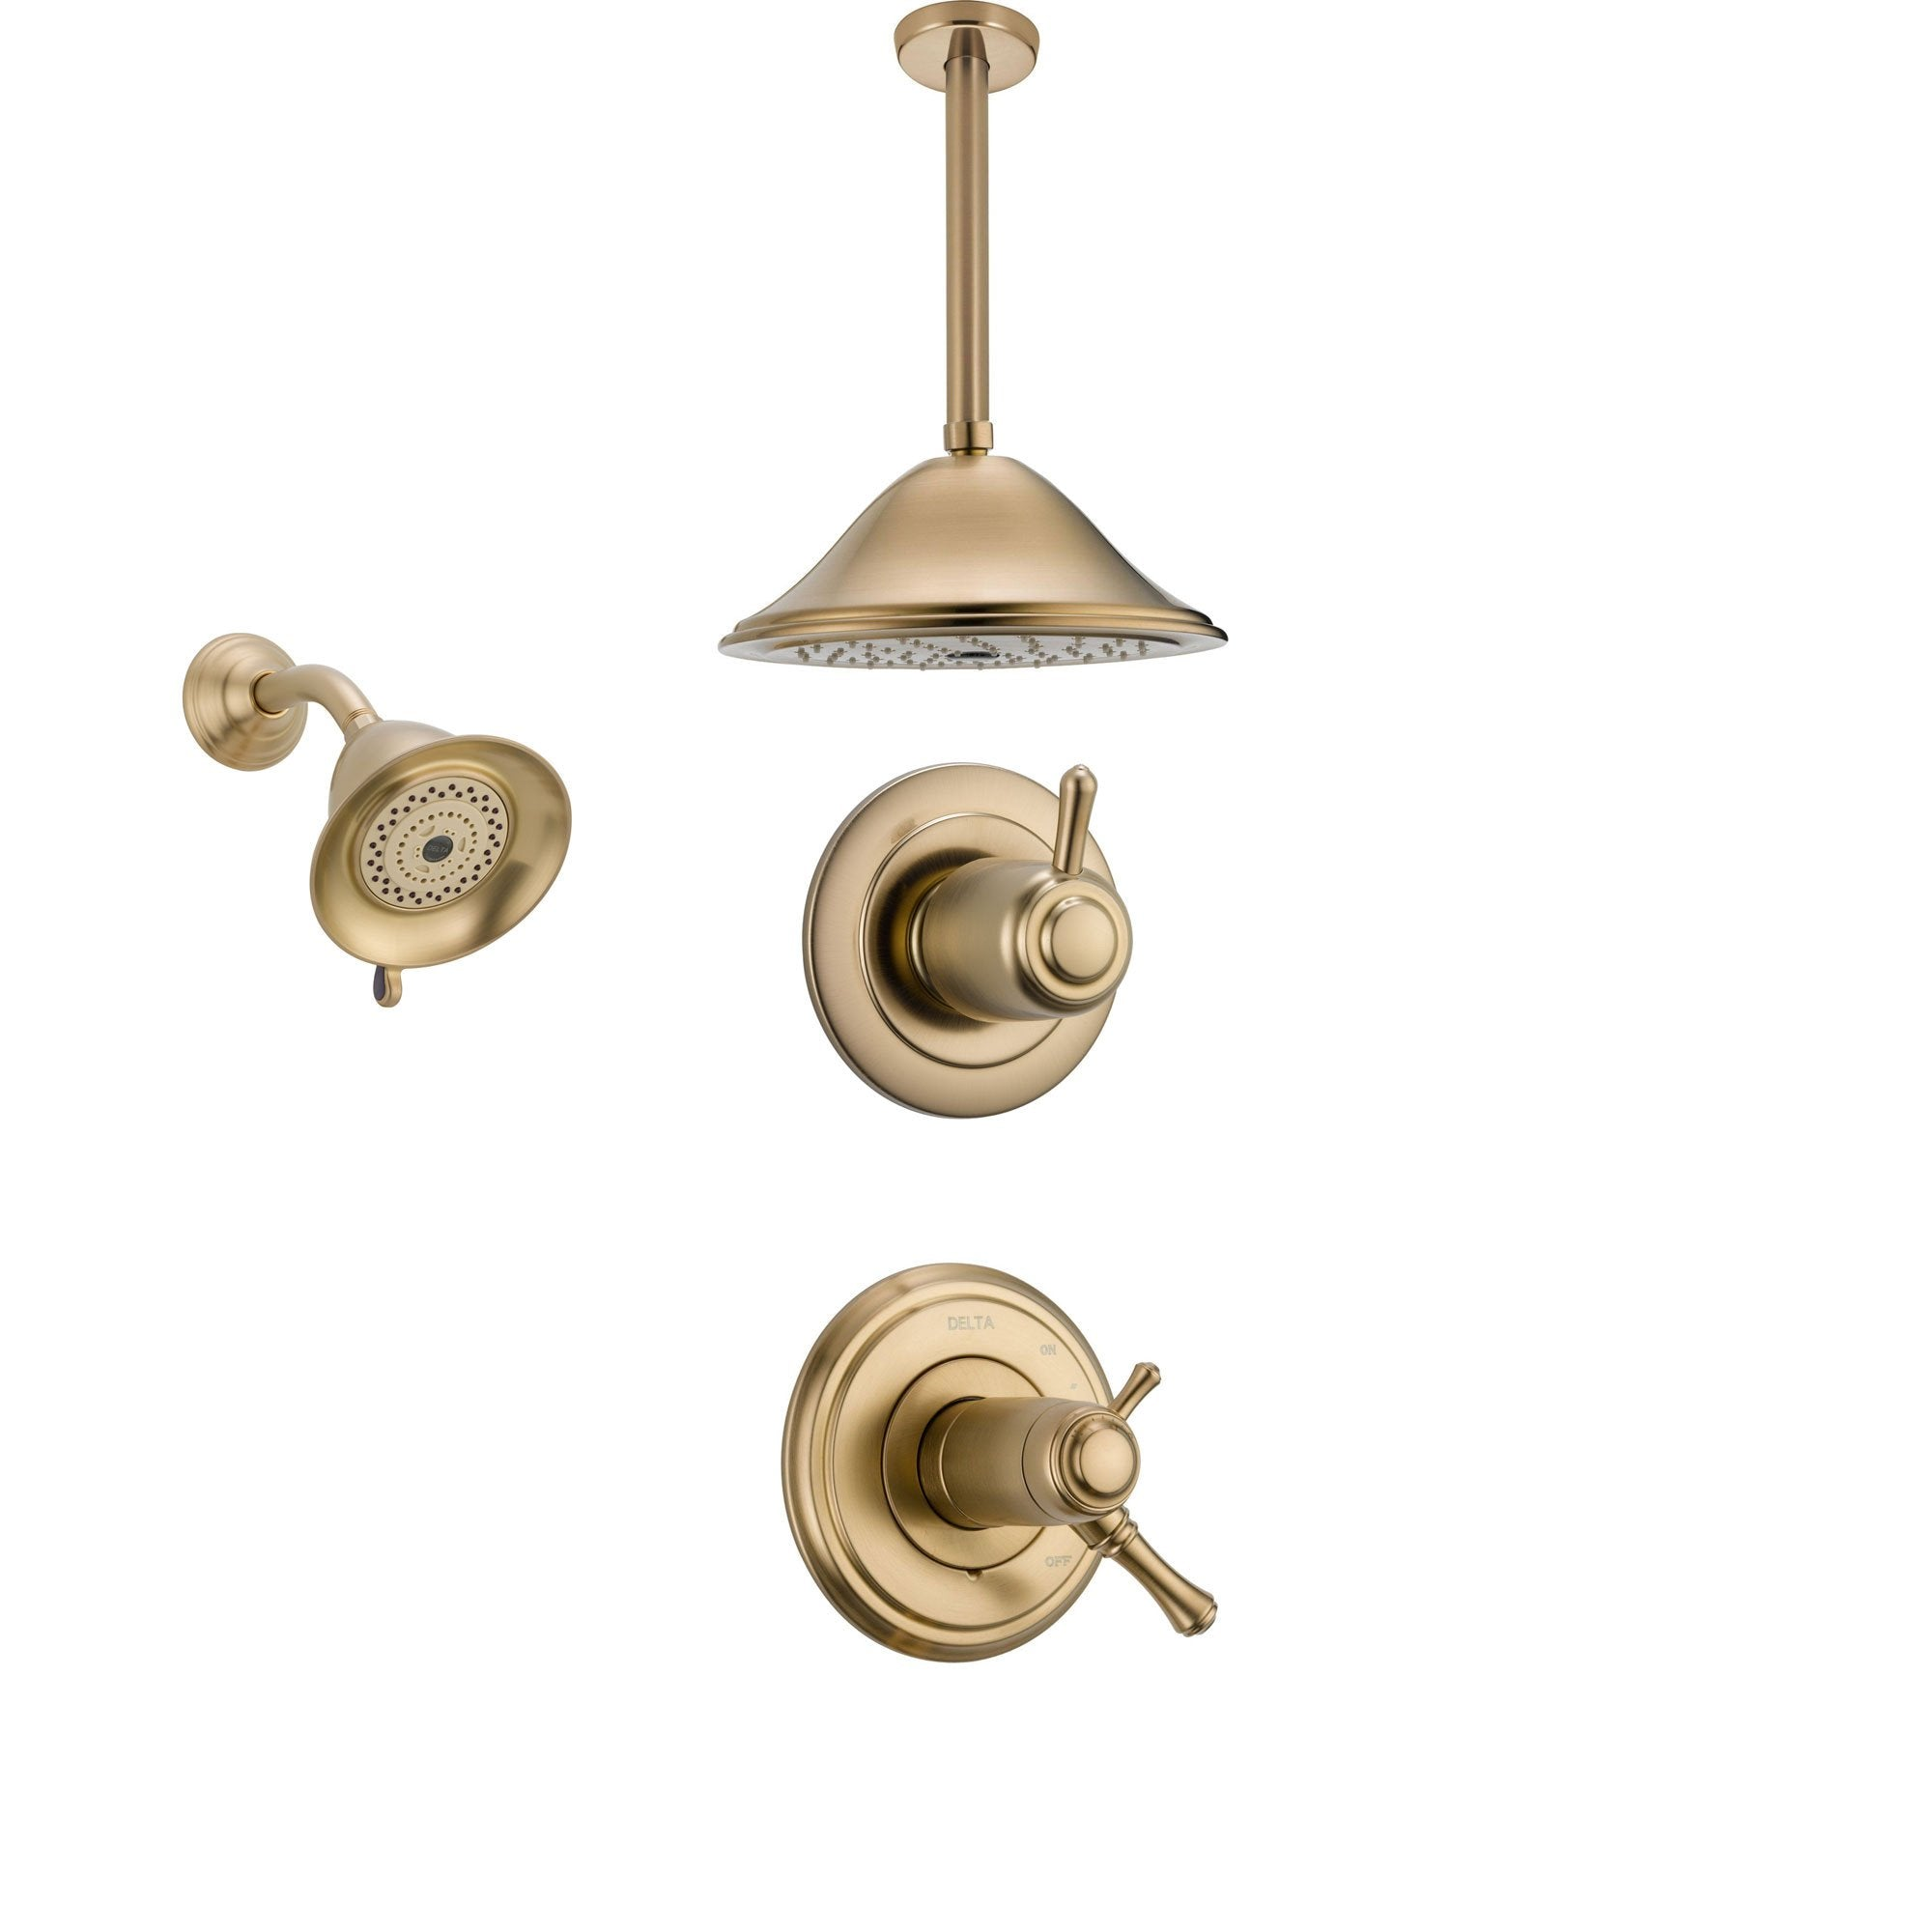 Delta Cassidy Champagne Bronze Shower System with Thermostatic Shower Handle, 3-setting Diverter, Large Ceiling Mount Rain Showerhead, and Wall Mount Showerhead SS17T9783CZ